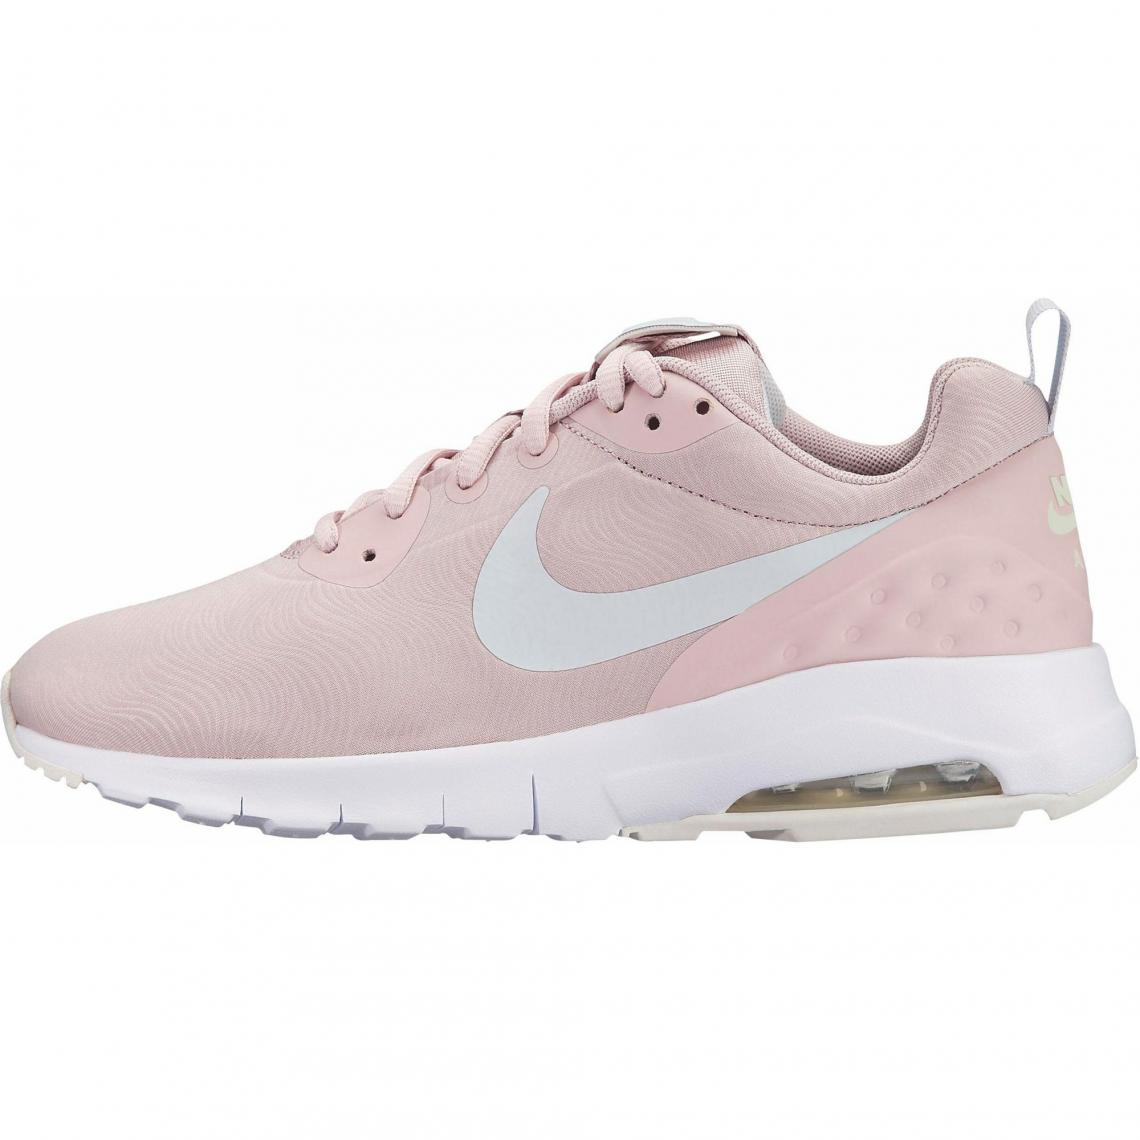 Chaussures de running homme Nike Air Max Motion Low - Rose   3Suisses 2cac4113f90e